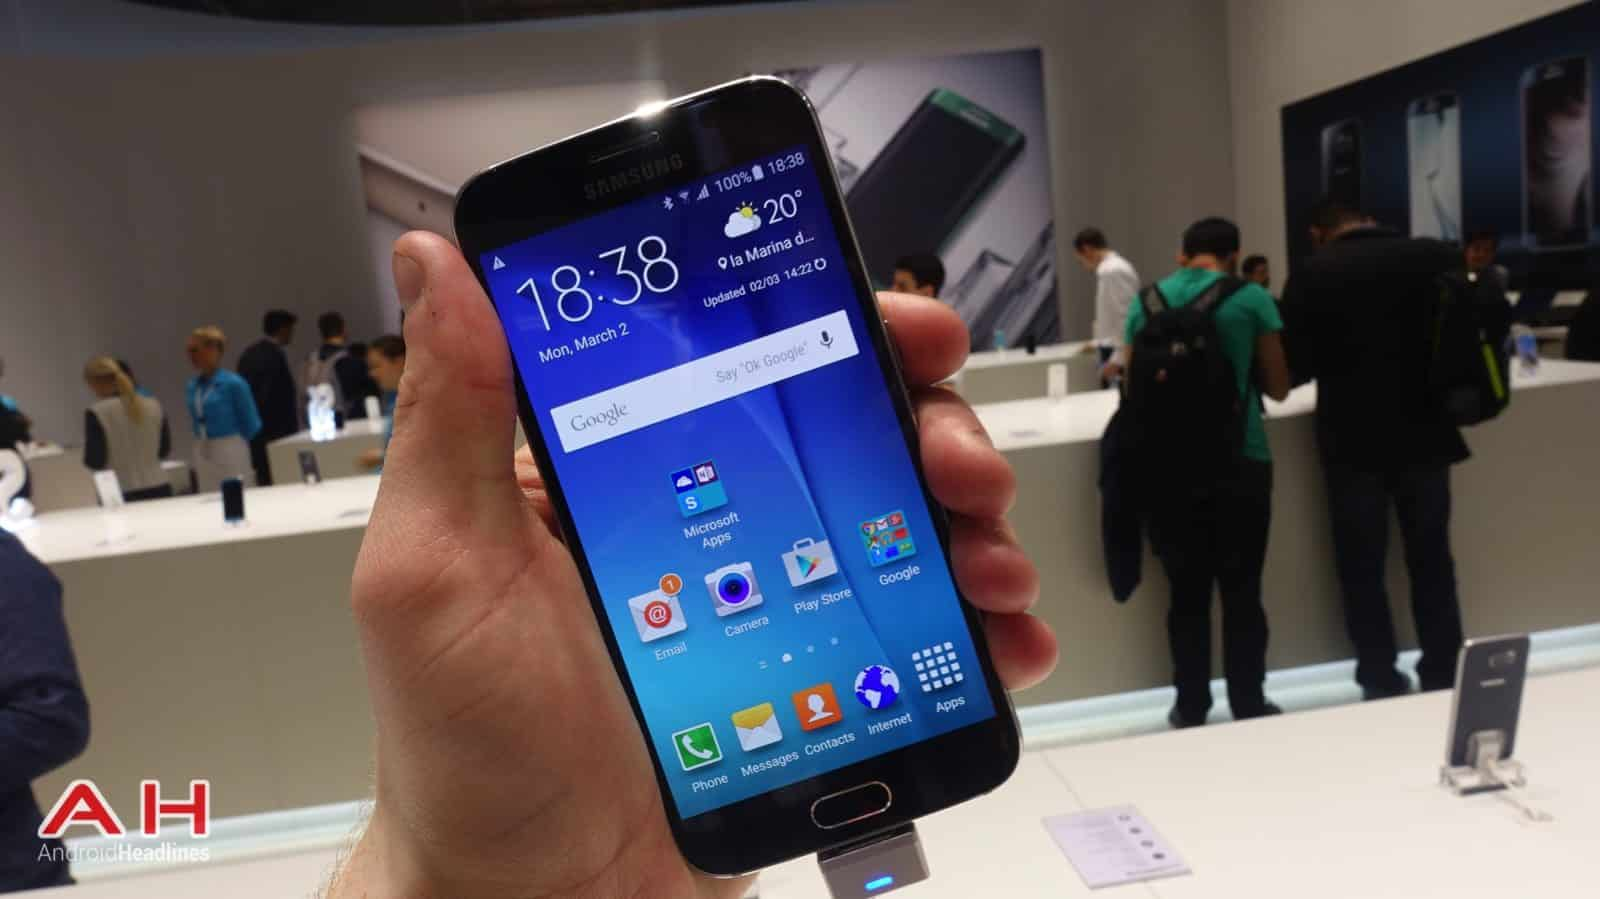 Galaxy S6 and Galaxy S6 Edge MWC AH 12